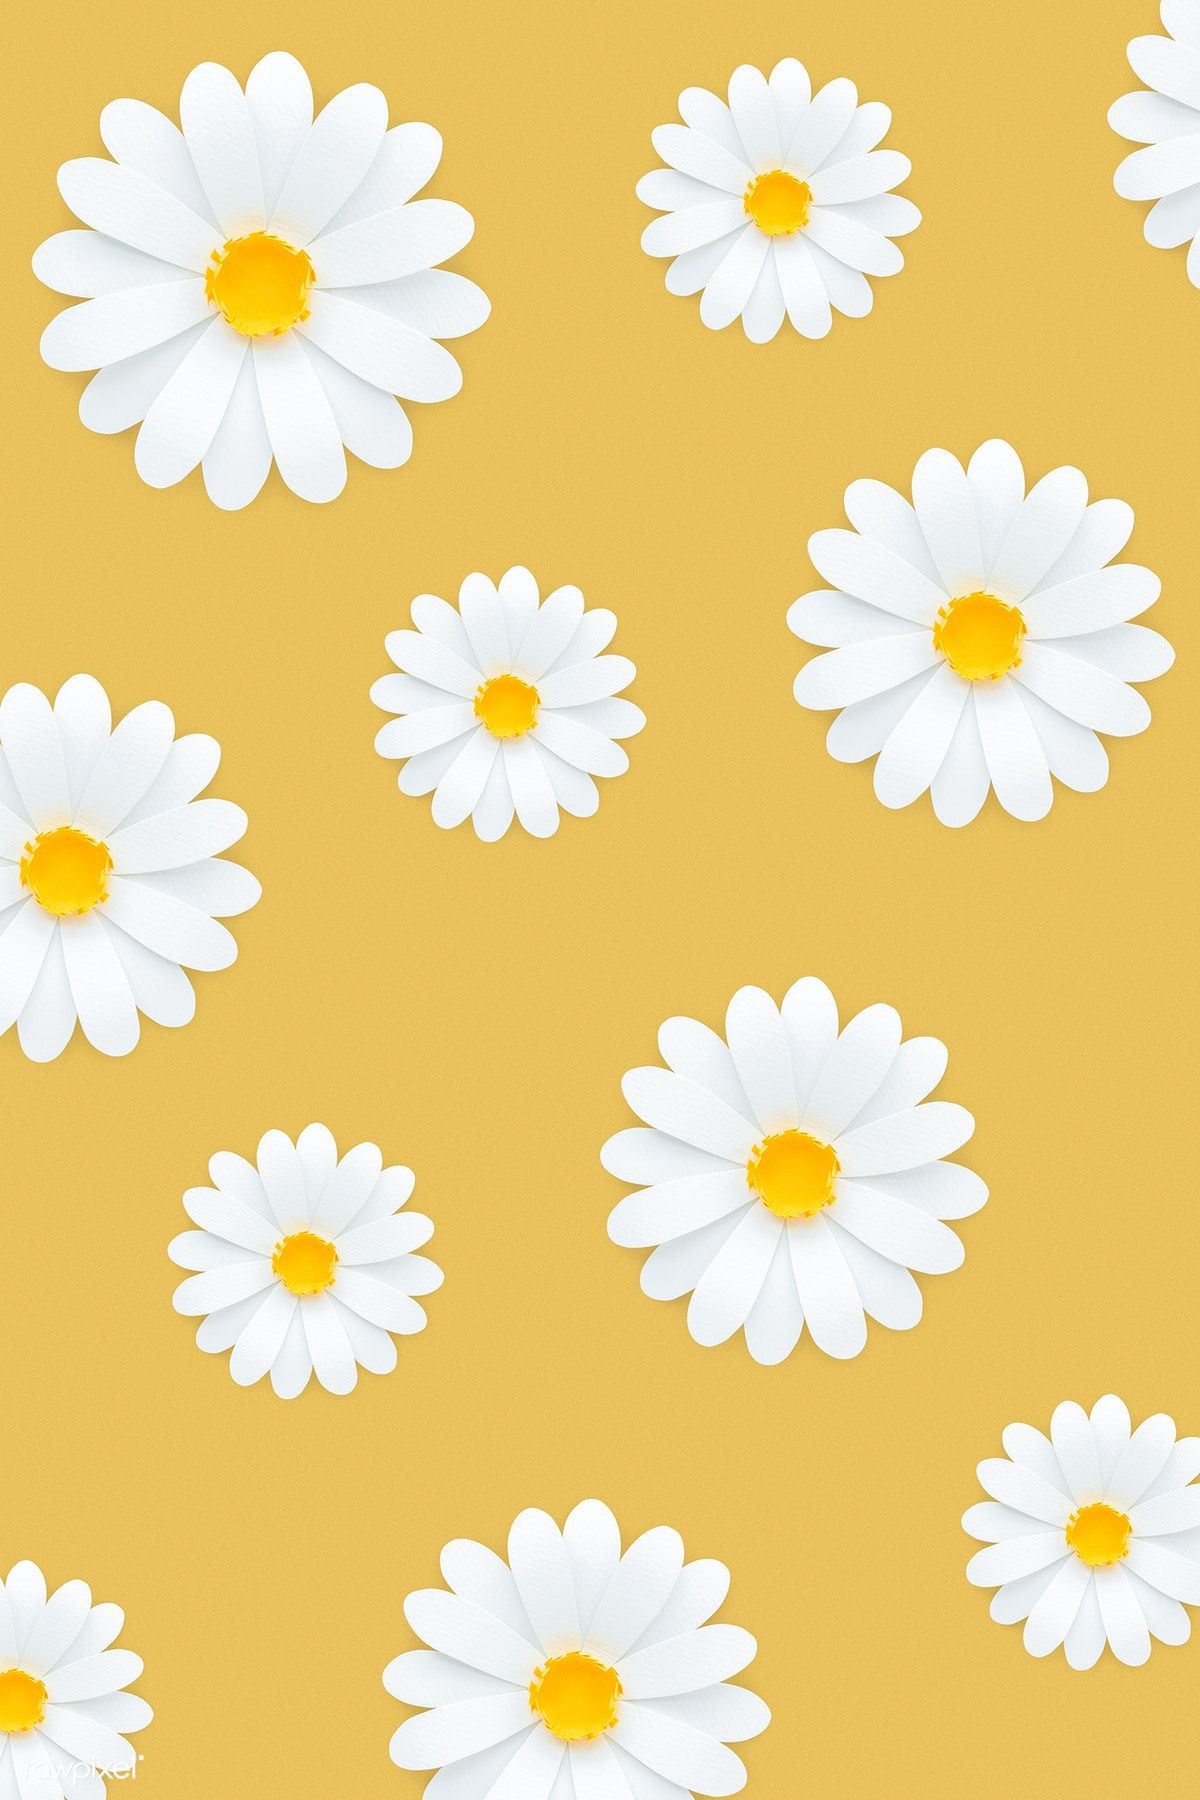 Download premium psd of White daisy pattern on yellow